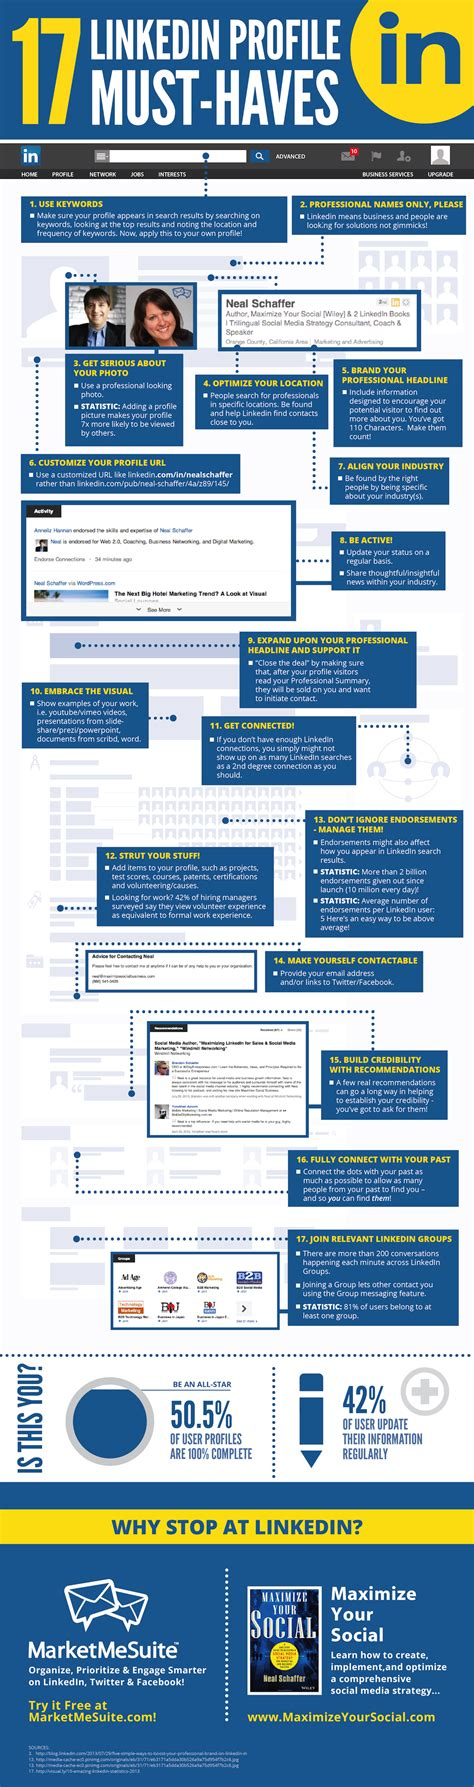 infographic linkedin profile must haves walker engineering